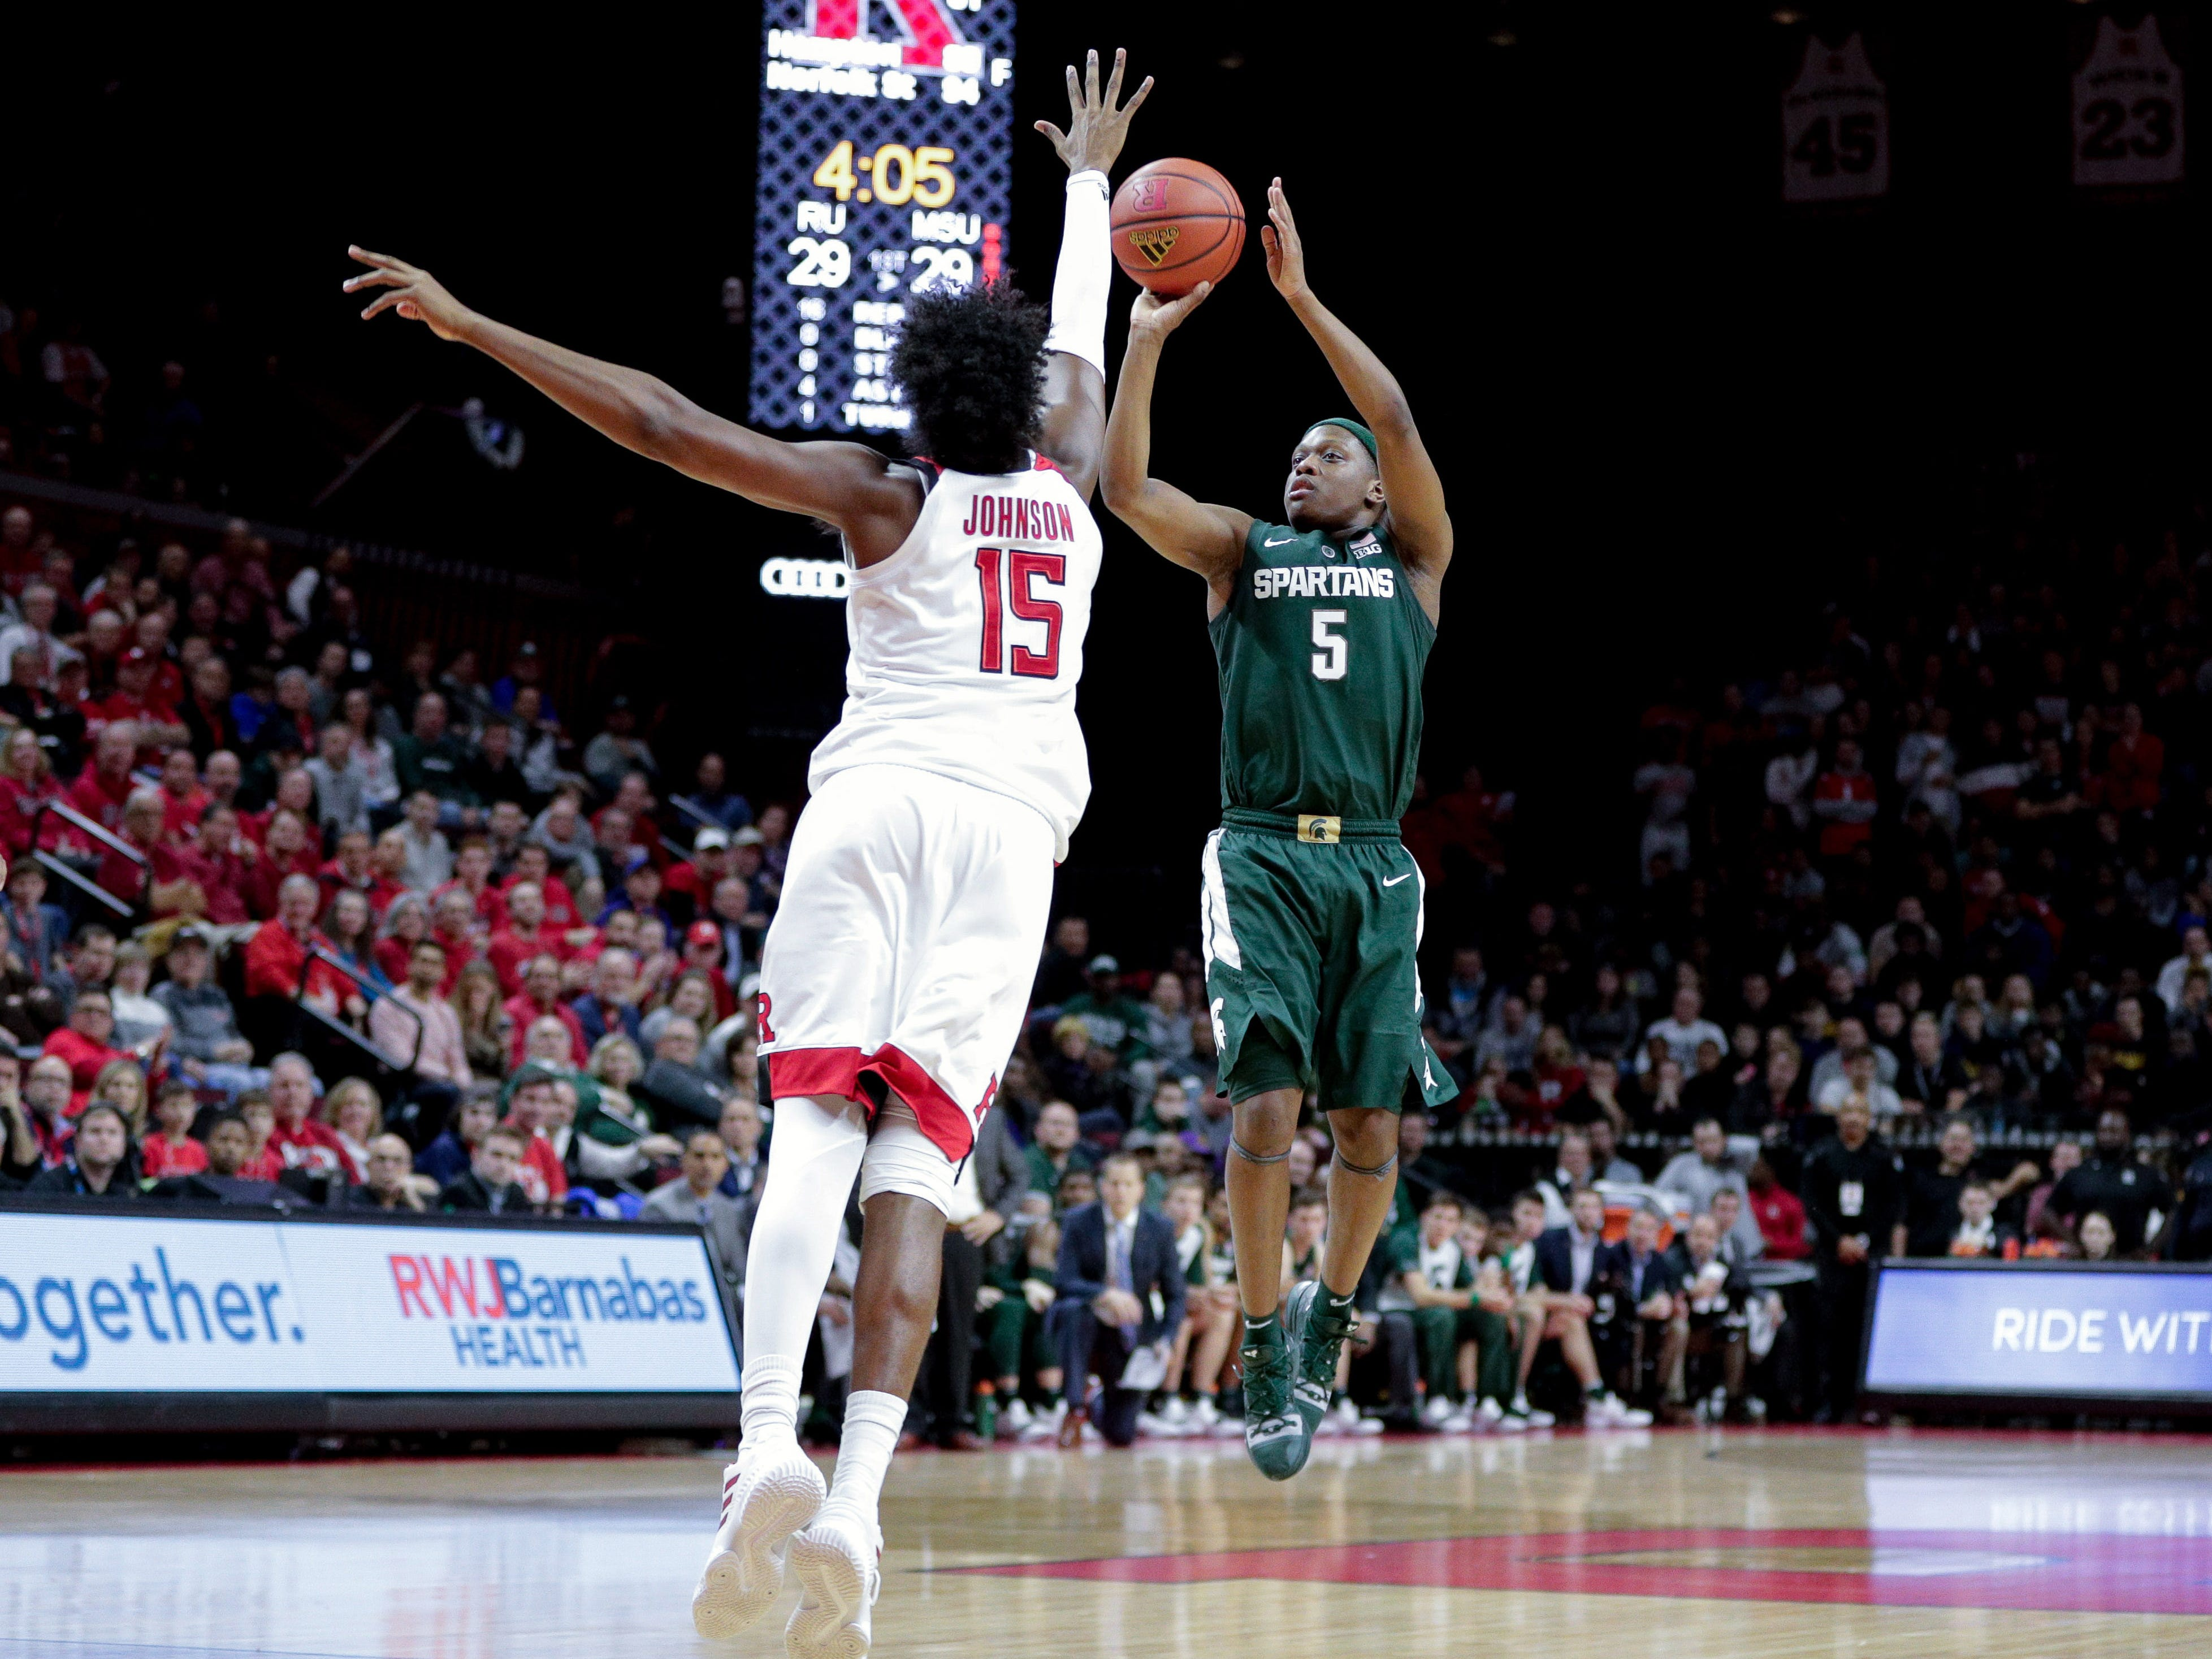 Michigan State Spartans guard Cassius Winston (5) shoots the ball as Rutgers Scarlet Knights center Myles Johnson (15) defends  during the first half at Rutgers Athletic Center (RAC).